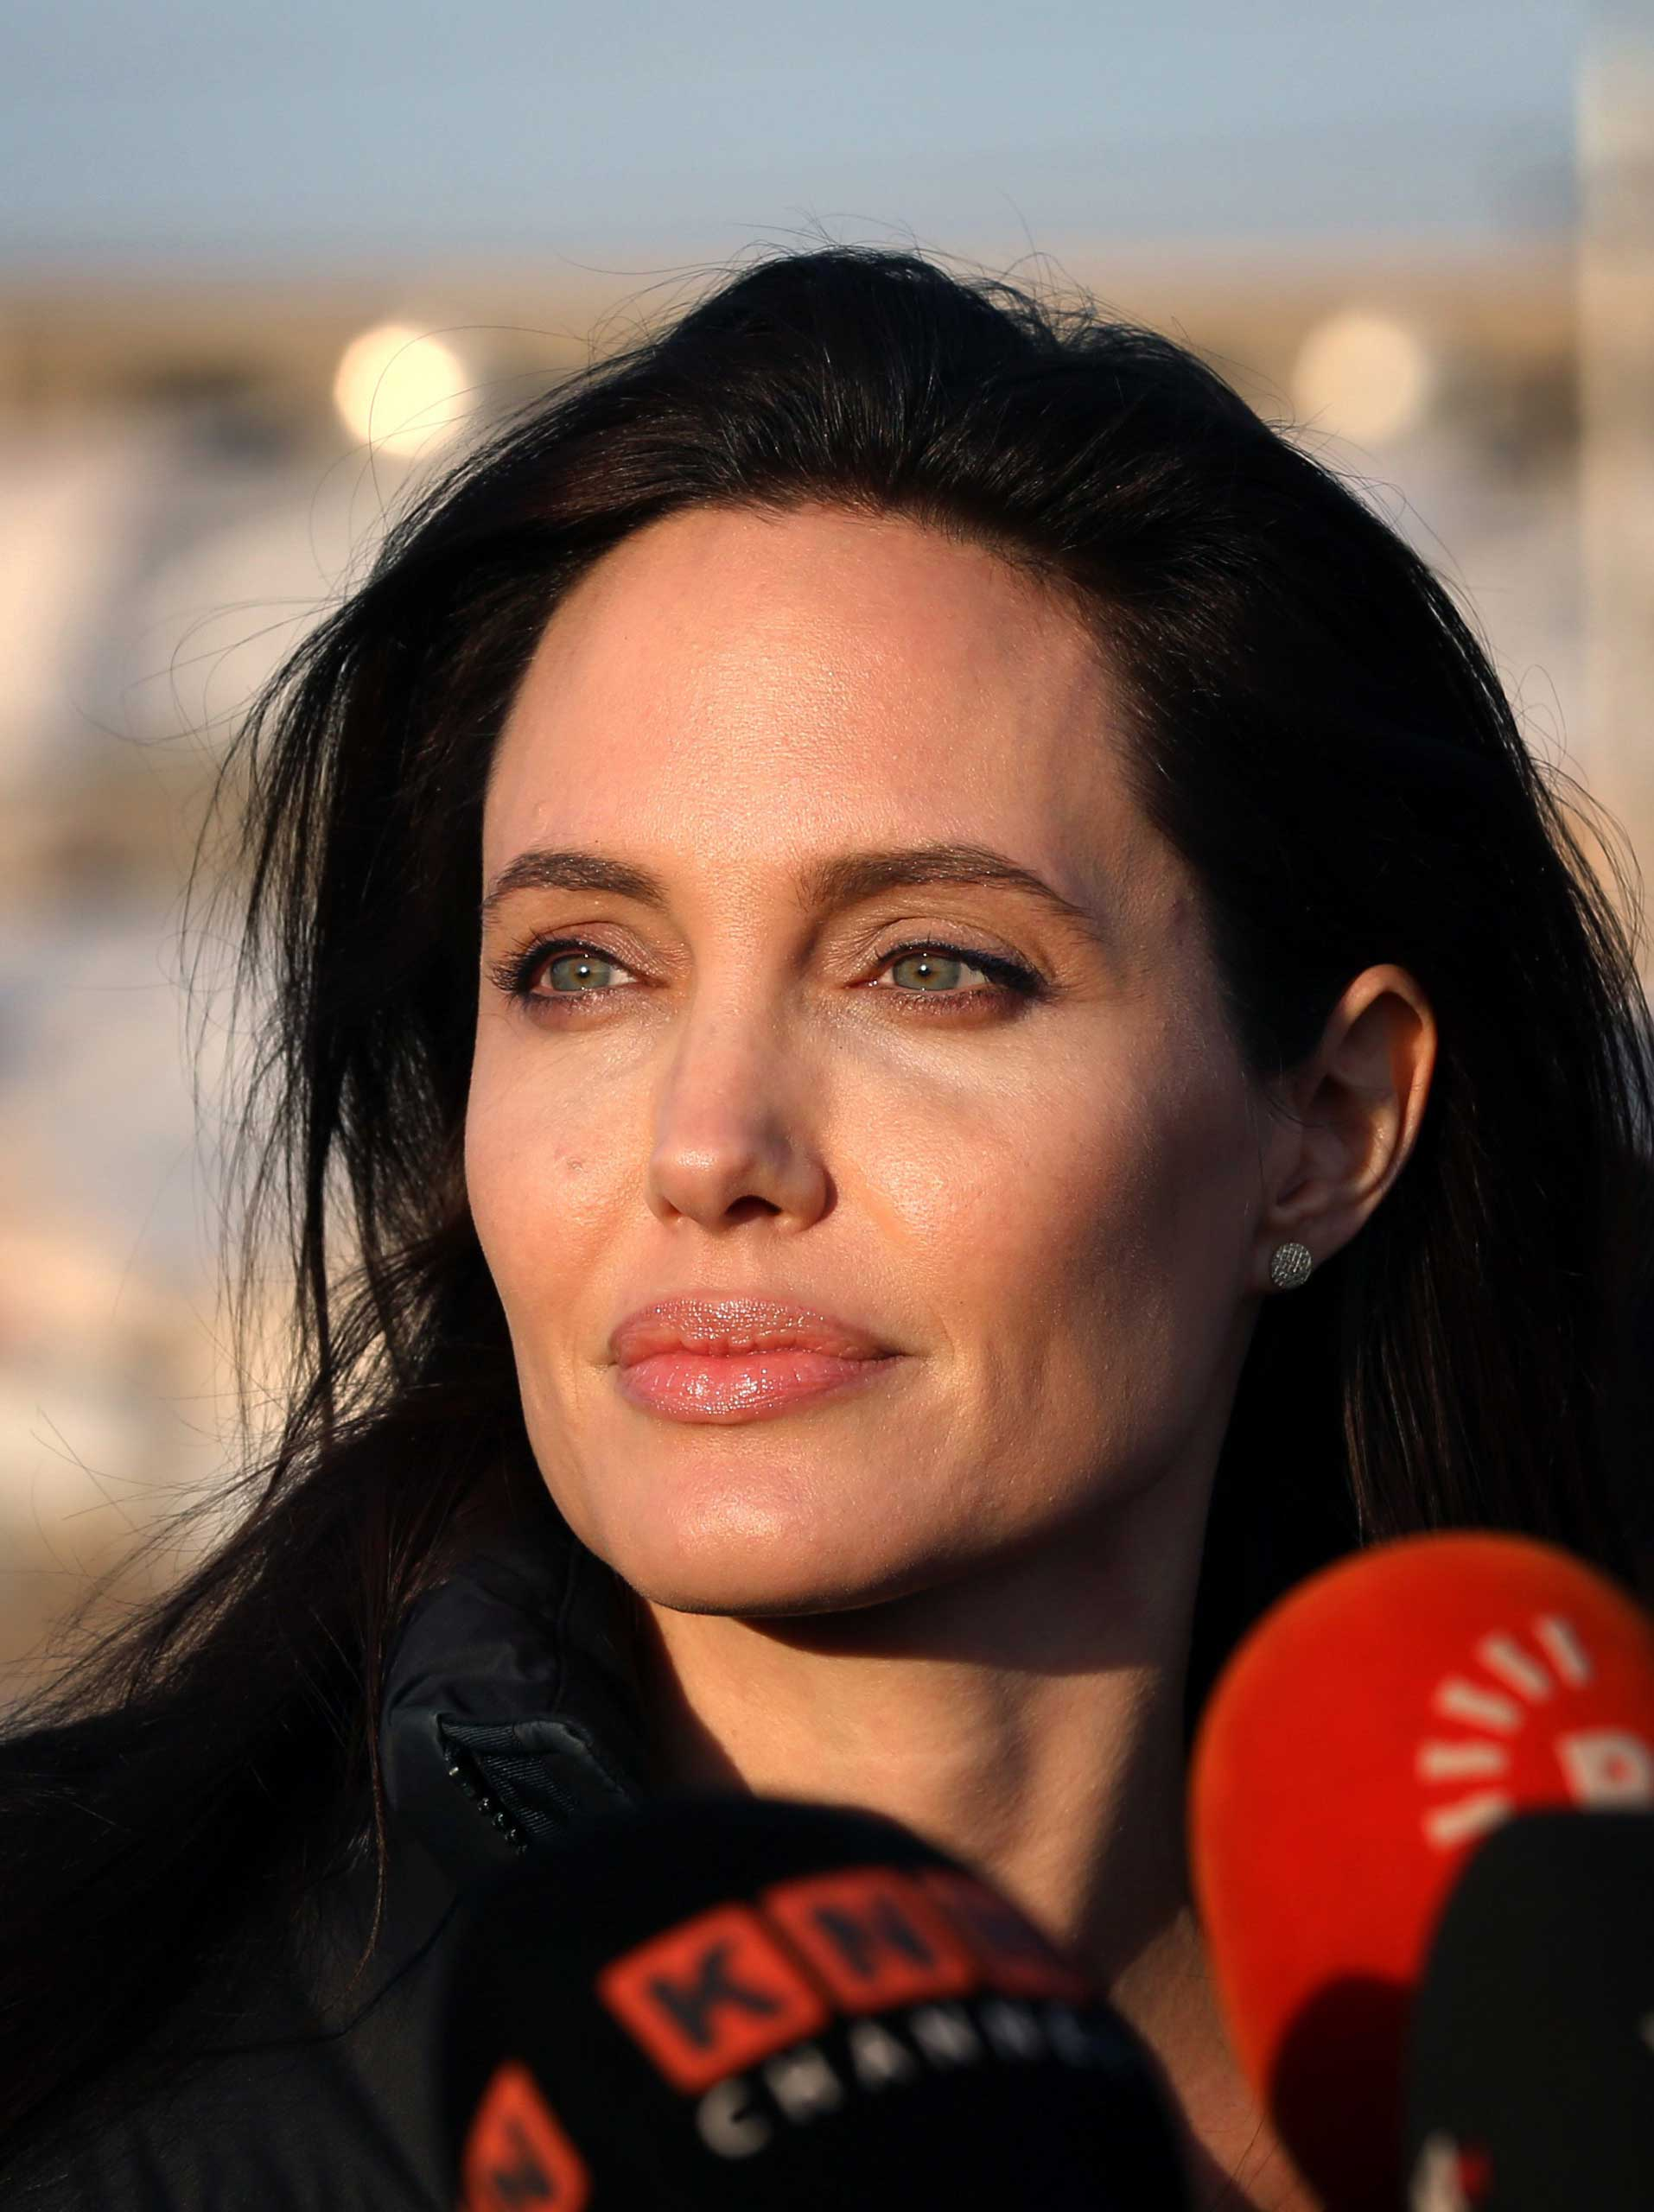 Angelina Jolie pauses as she delivers a speech during a visit to a camp for displaced Iraqis in Khanke, a few kilometers from the Turkish border in Iraq's Dohuk province on Jan. 25, 2015.